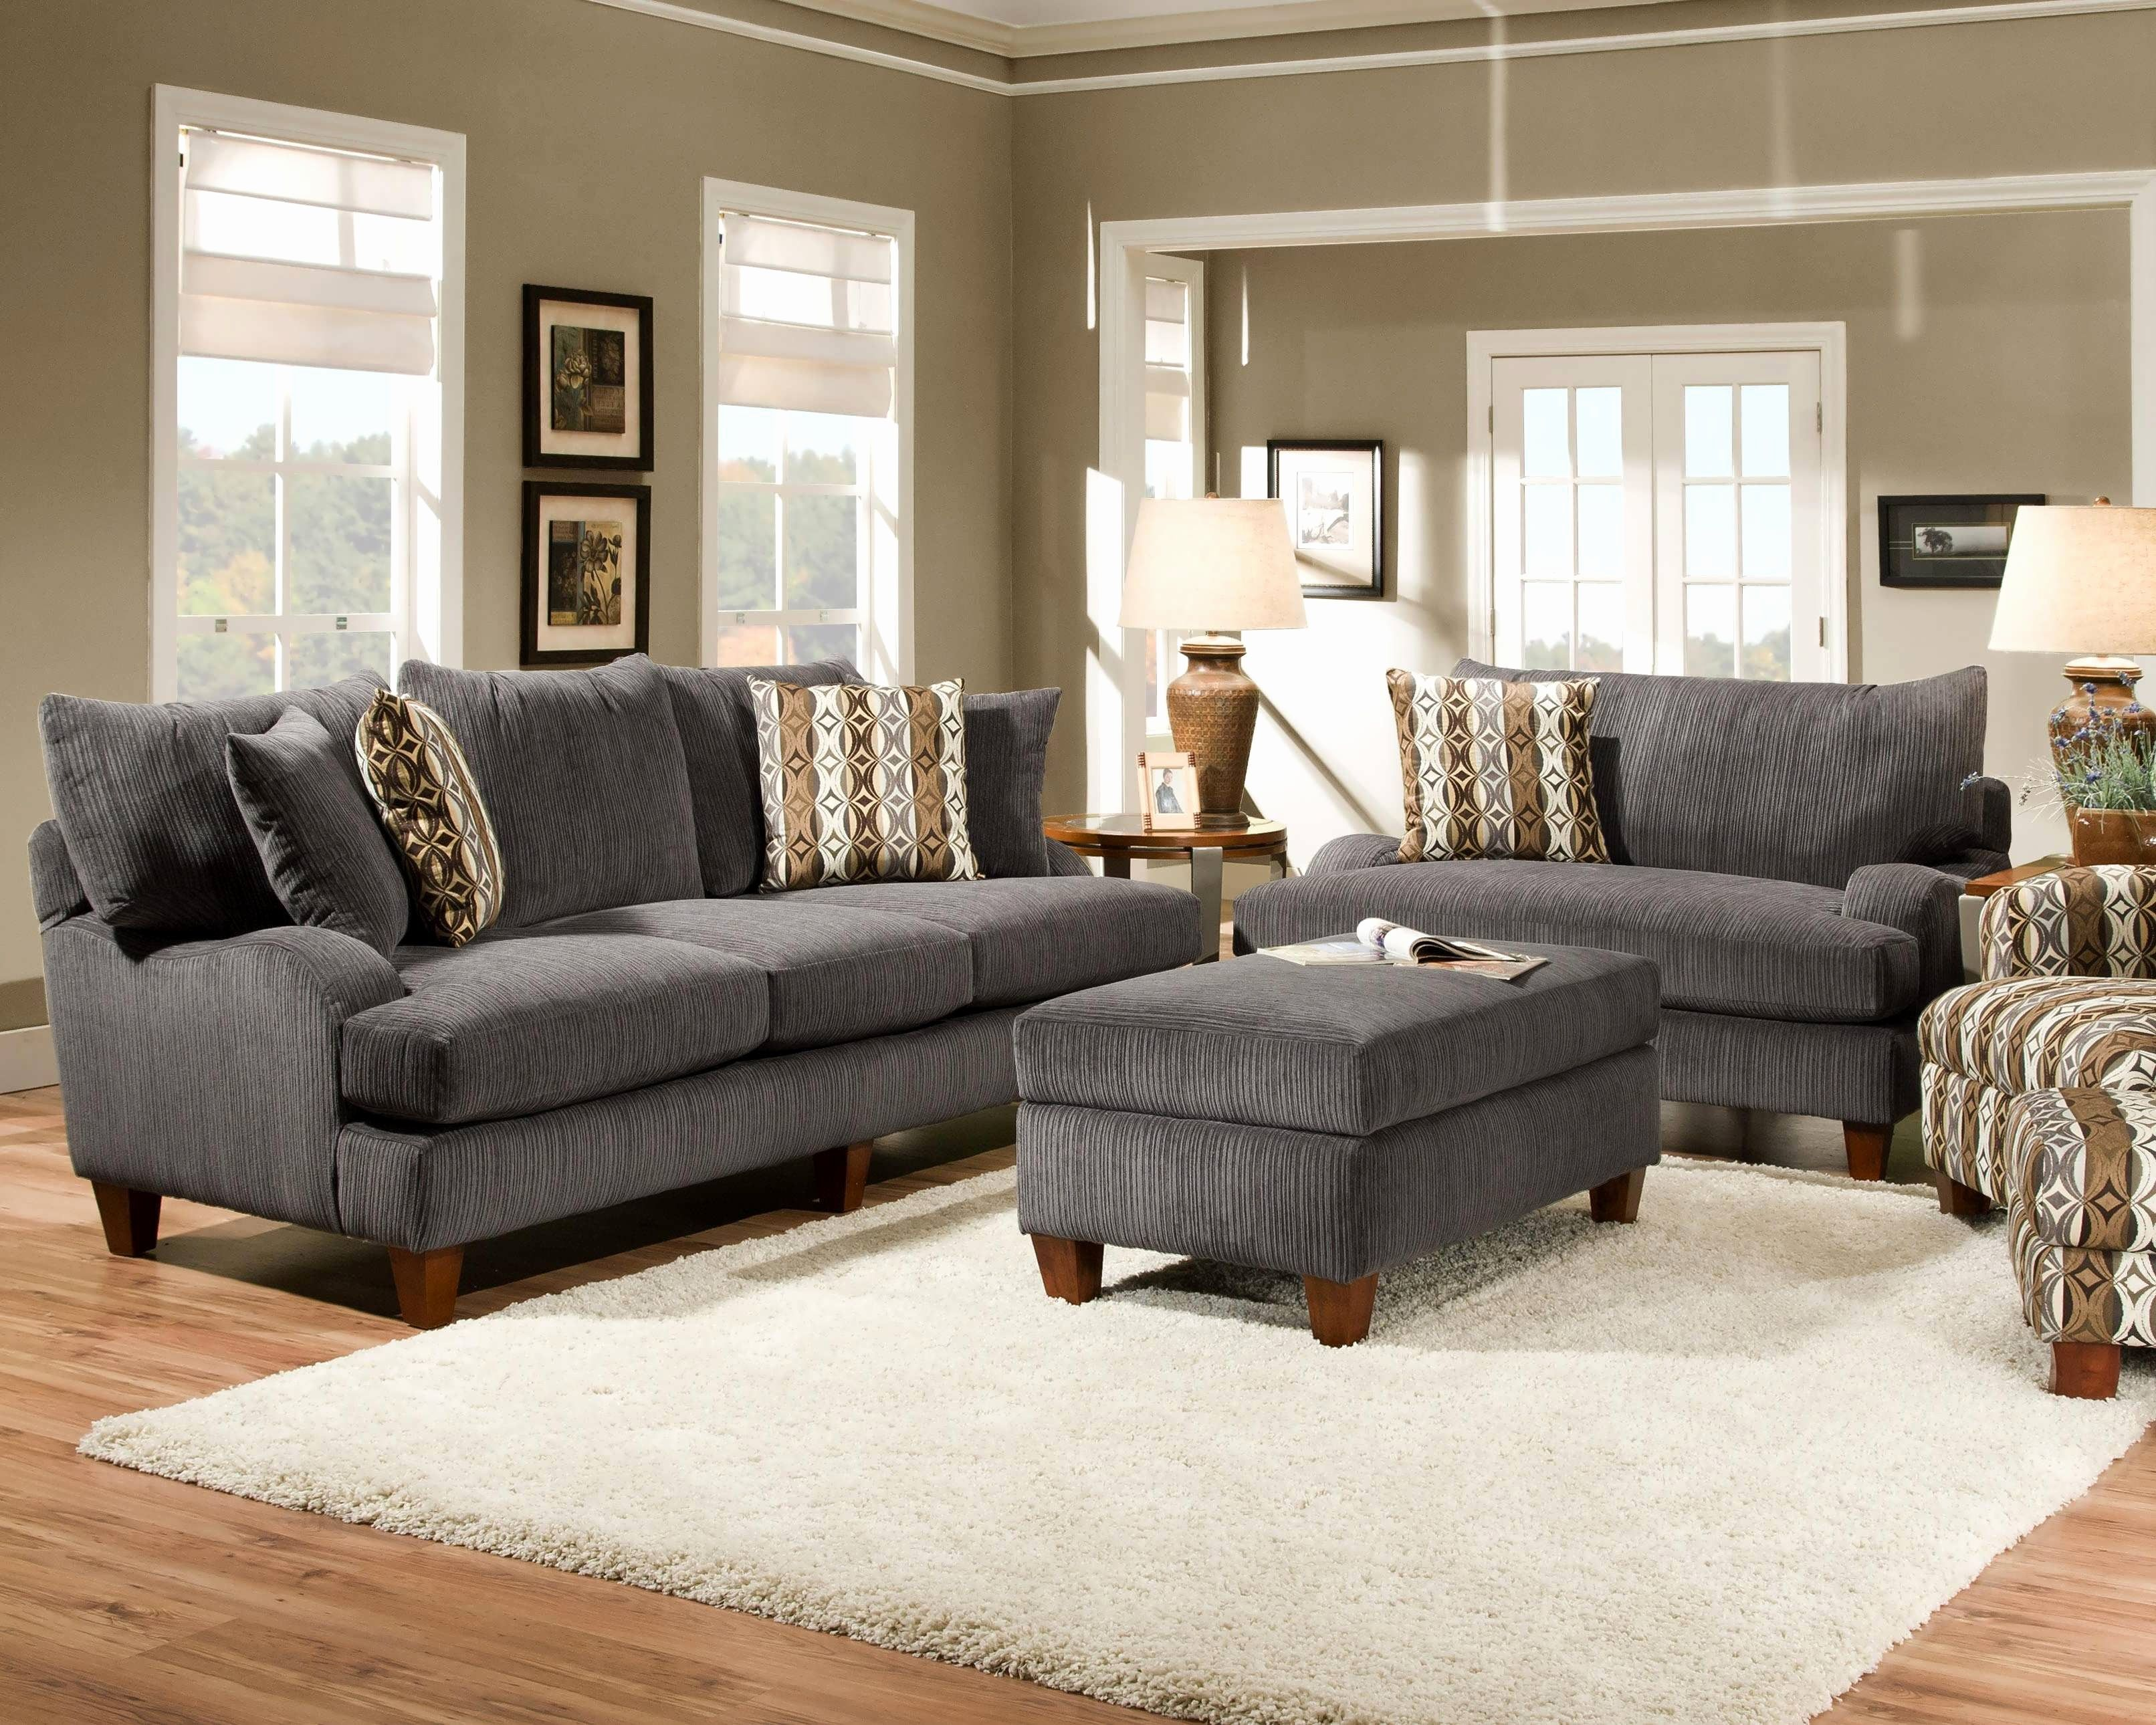 Grey Sofa Set Jitterbug Gray Sofa And Loveseat Fabric